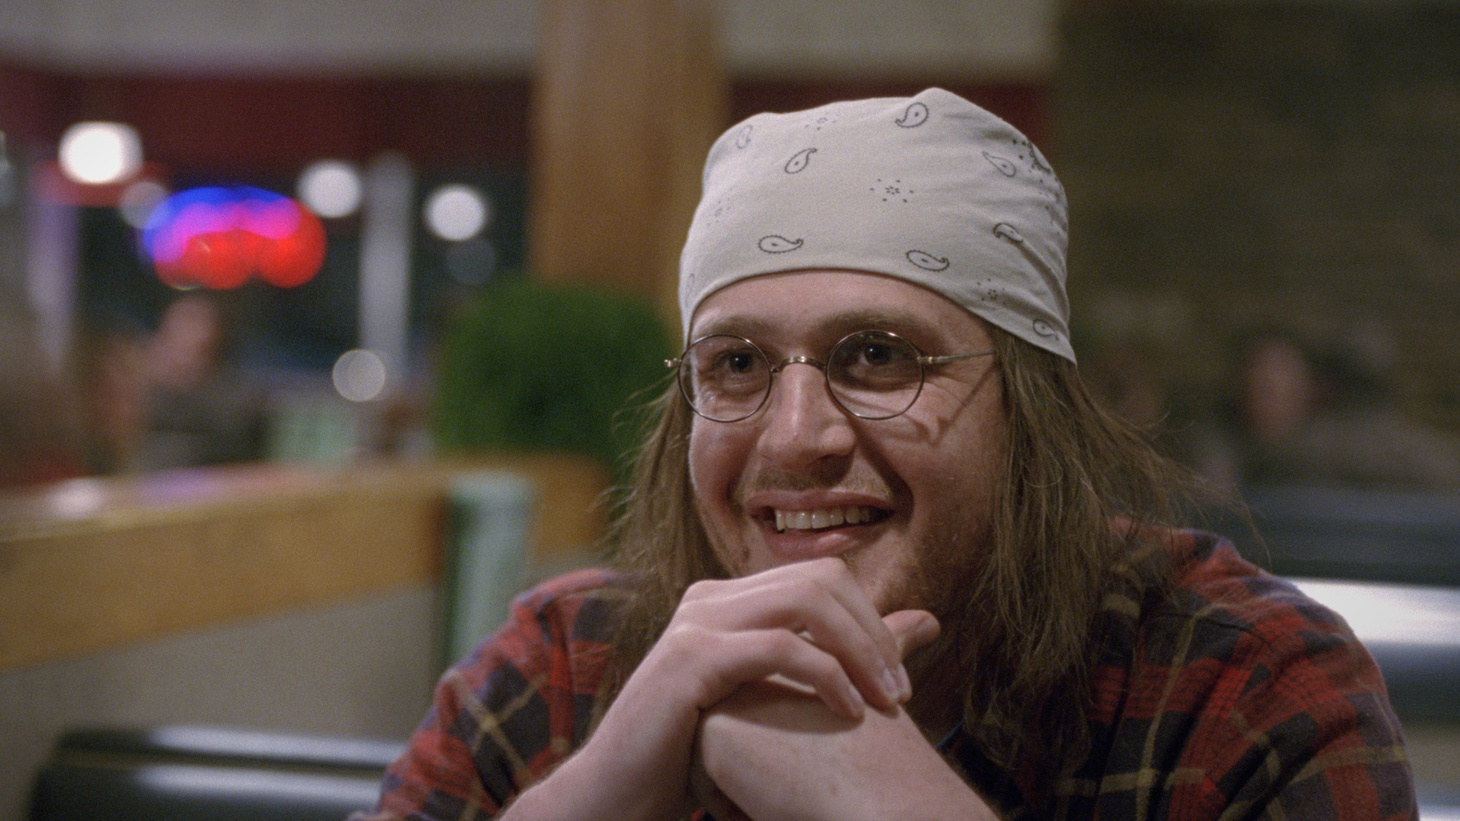 Jason Segel says he was terrified to take on the role of writer David Foster Wallace in The End of the Tour, but director James Ponsoldt never doubted him. They tell us about their new film, which follows a journalist on the road with the famed author.